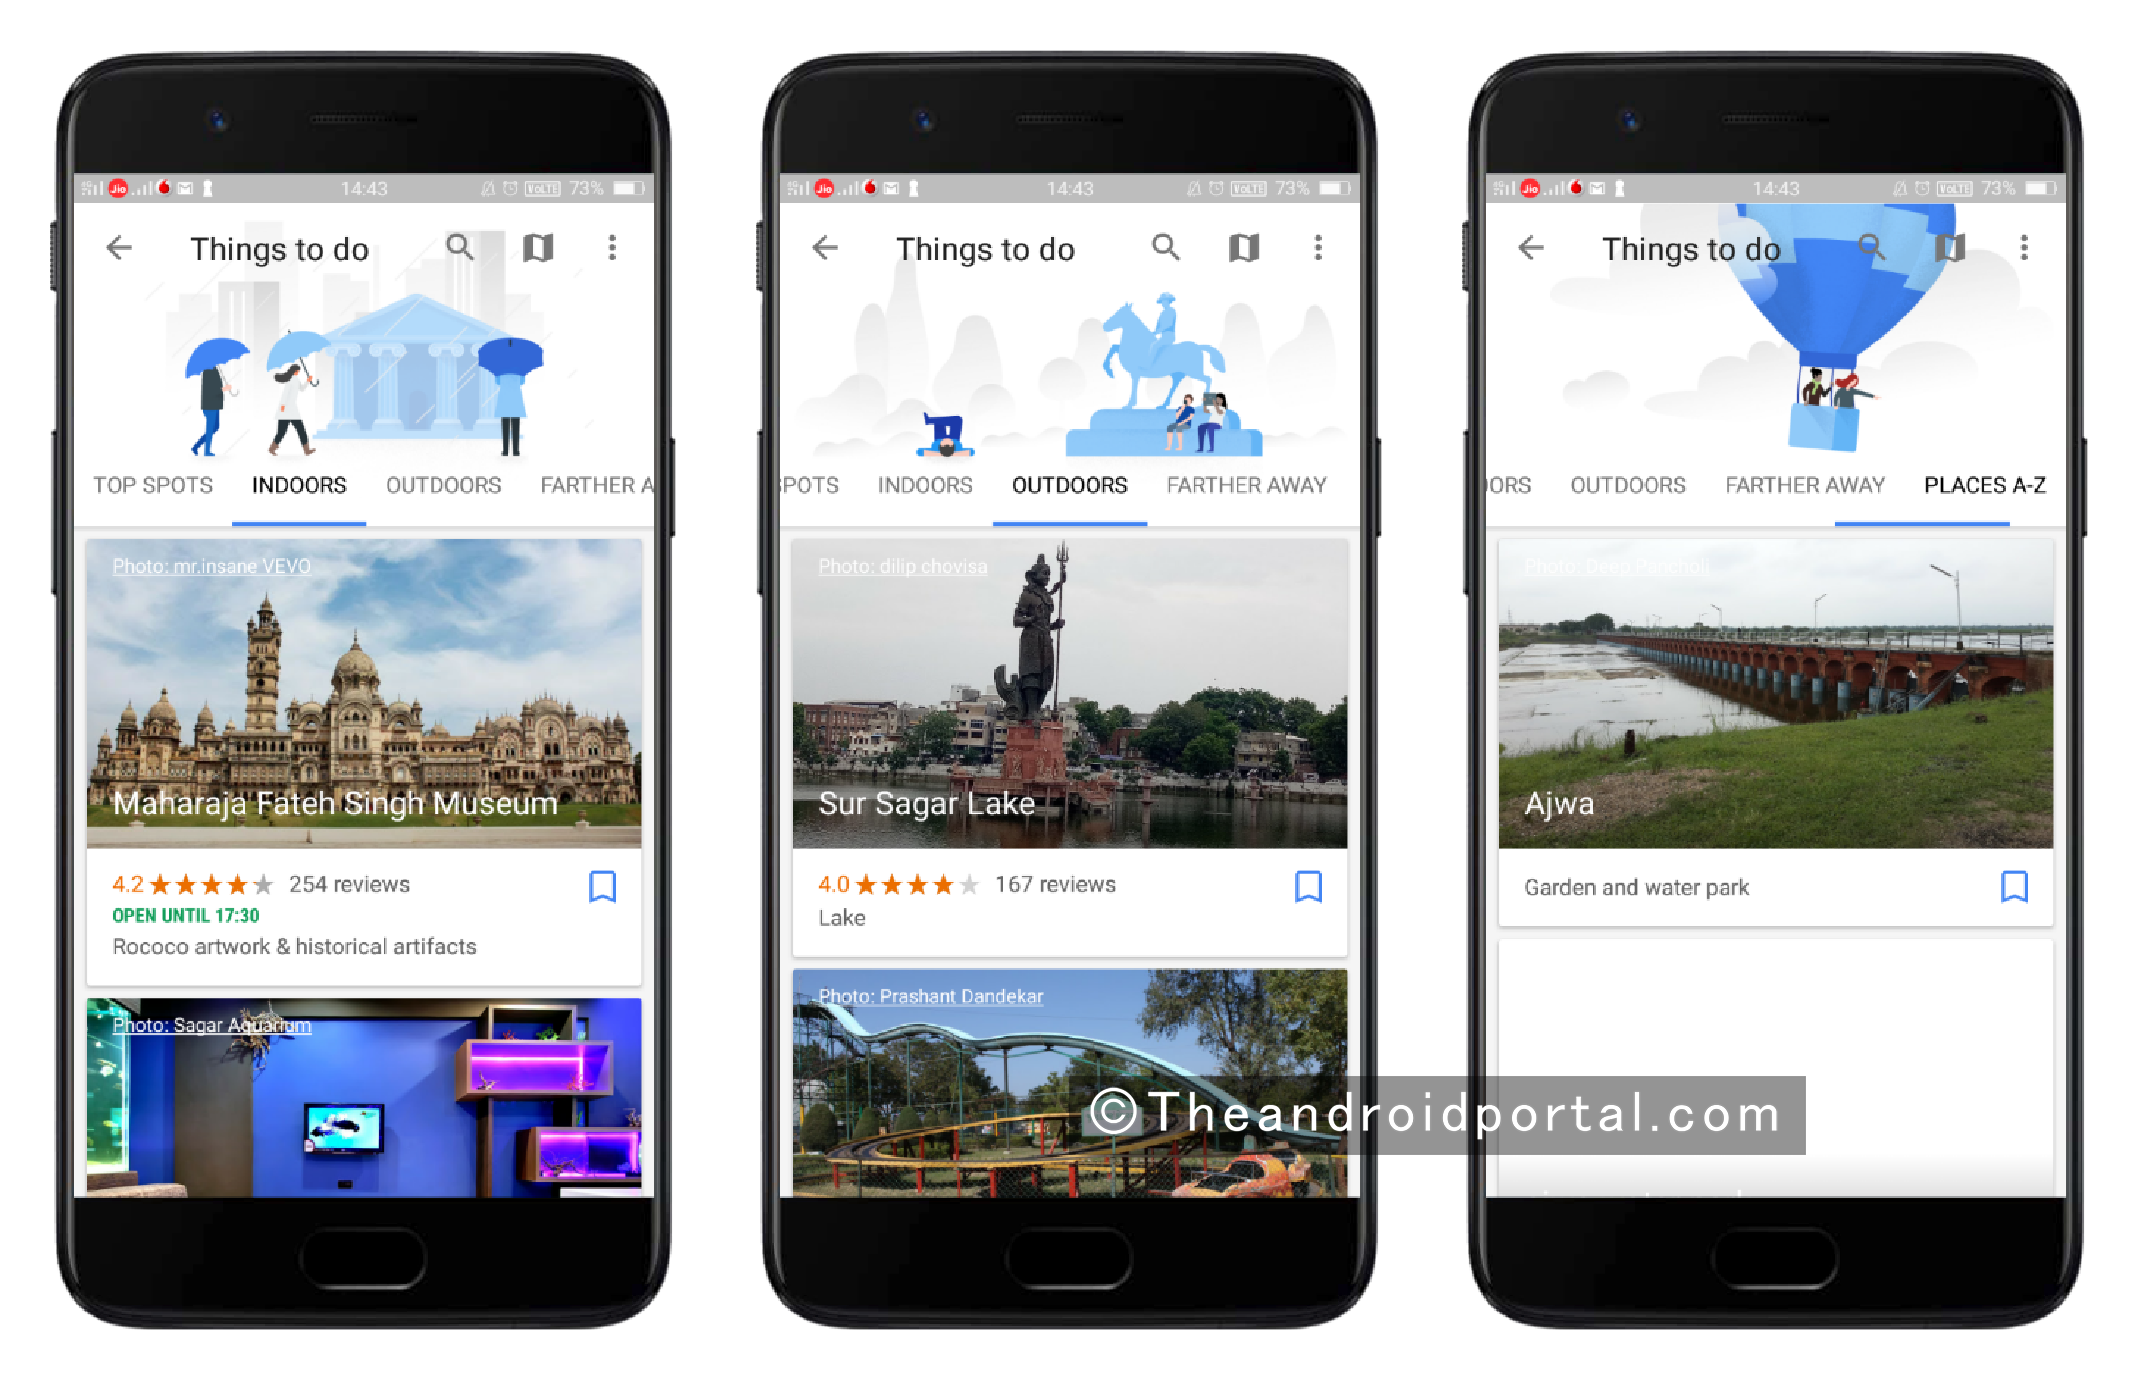 Find Things-to-do near your Destination 2 - theandroidportal.com